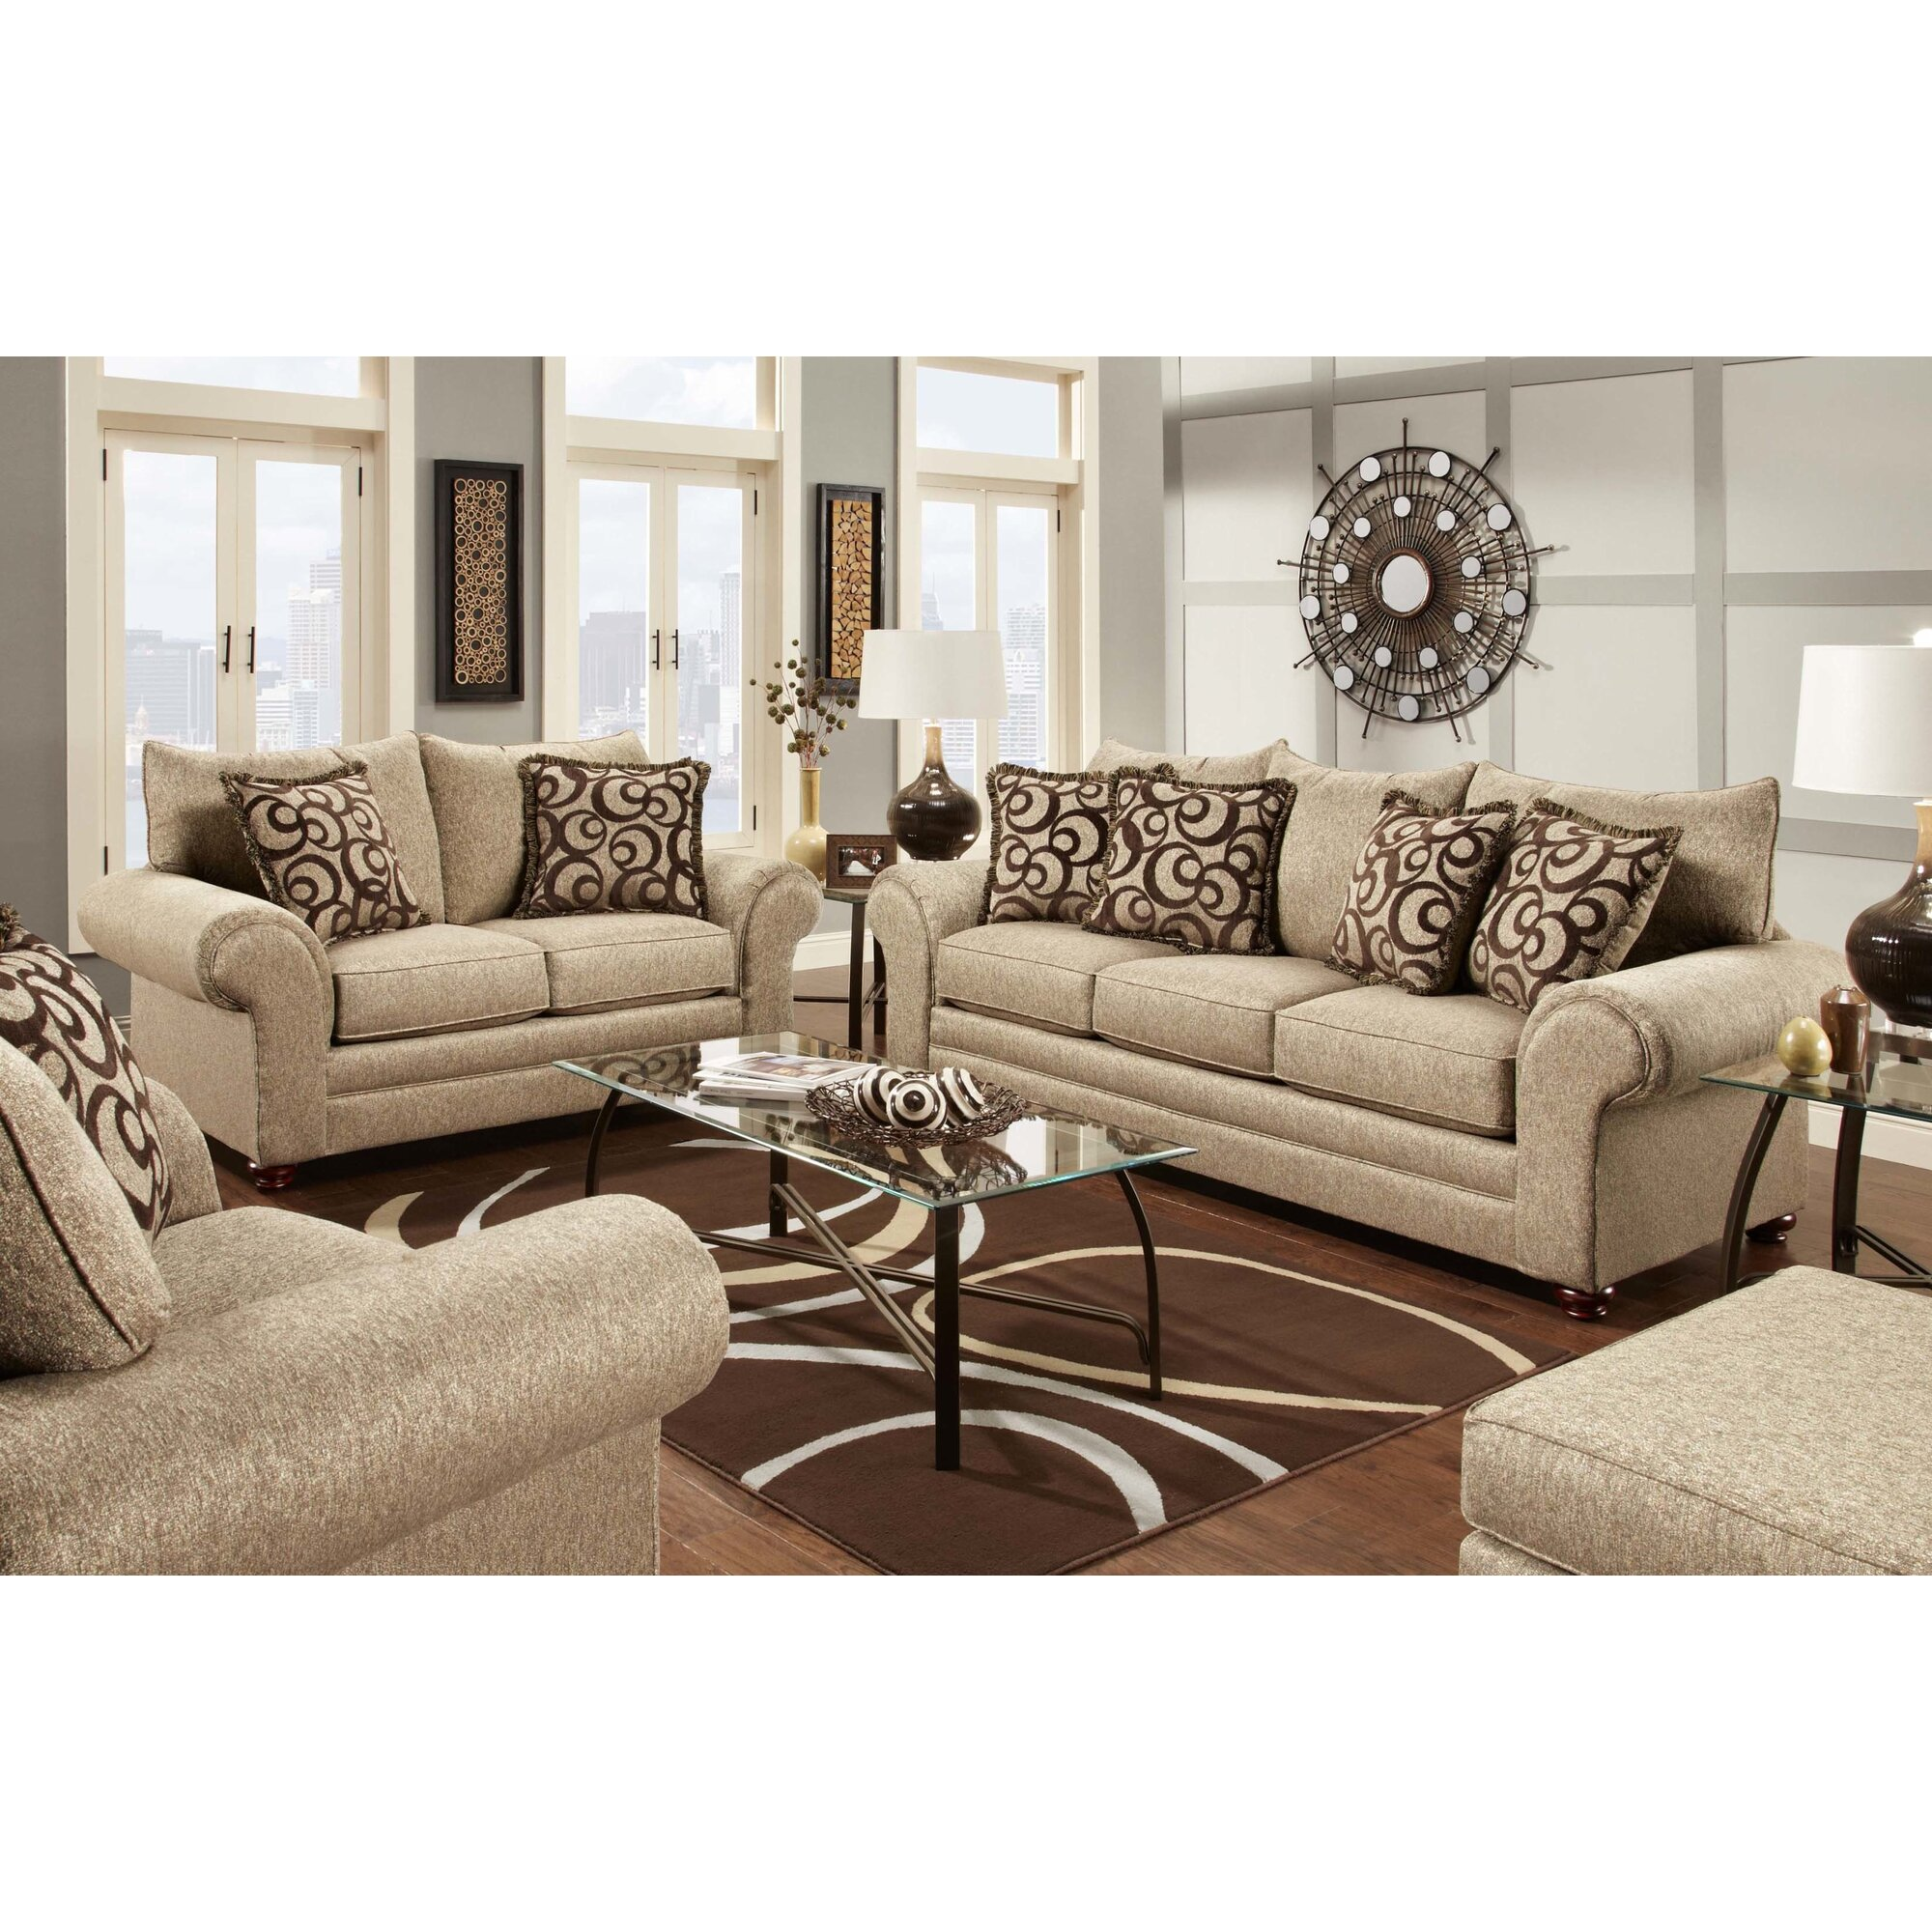 Astrid Living Room Collection